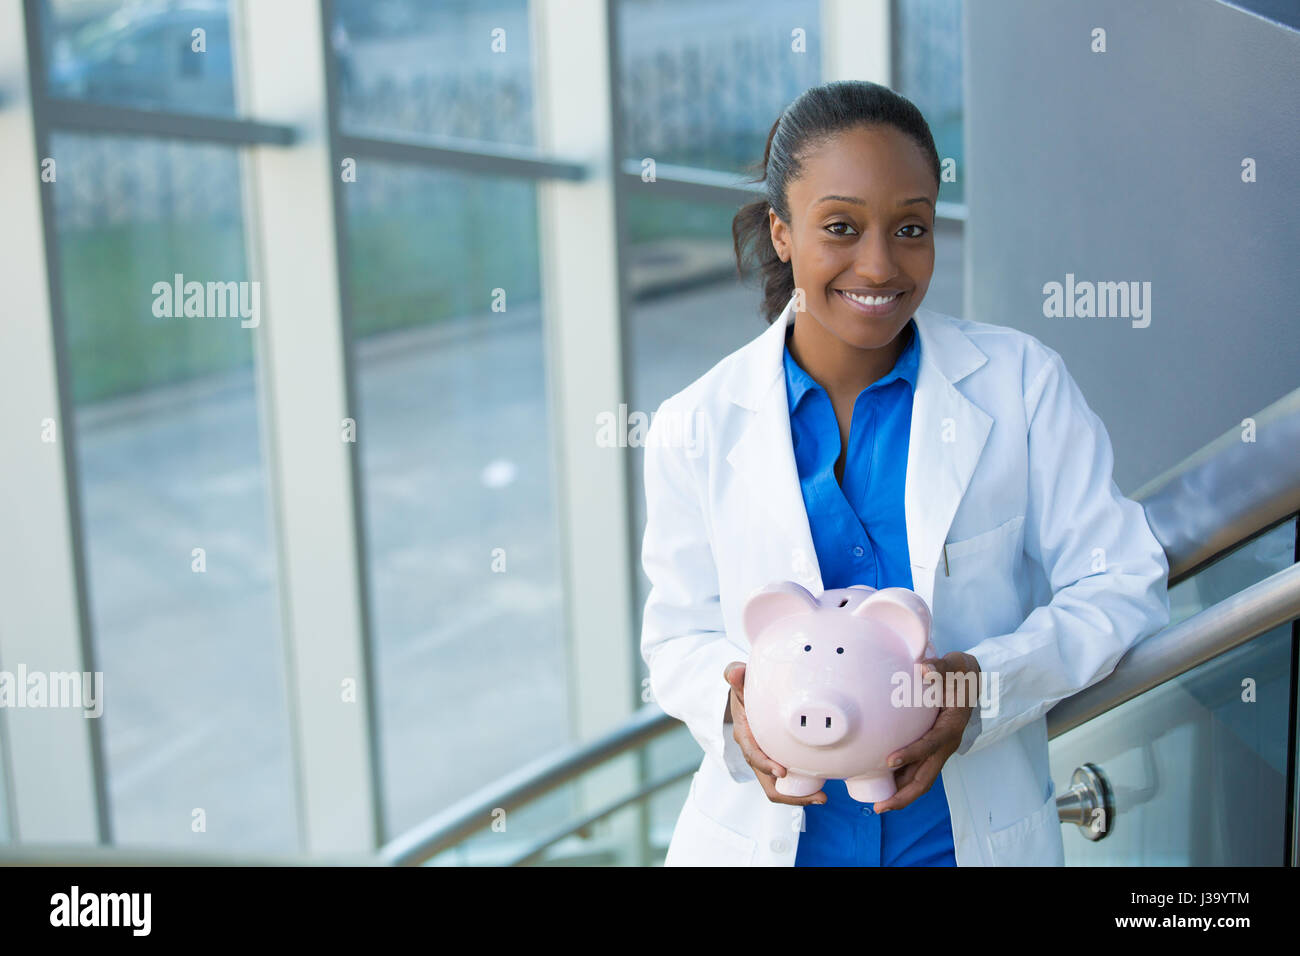 Closeup portrait, healthcare professional holding piggy bank isolated indoors clinic hospital background.  Health - Stock Image